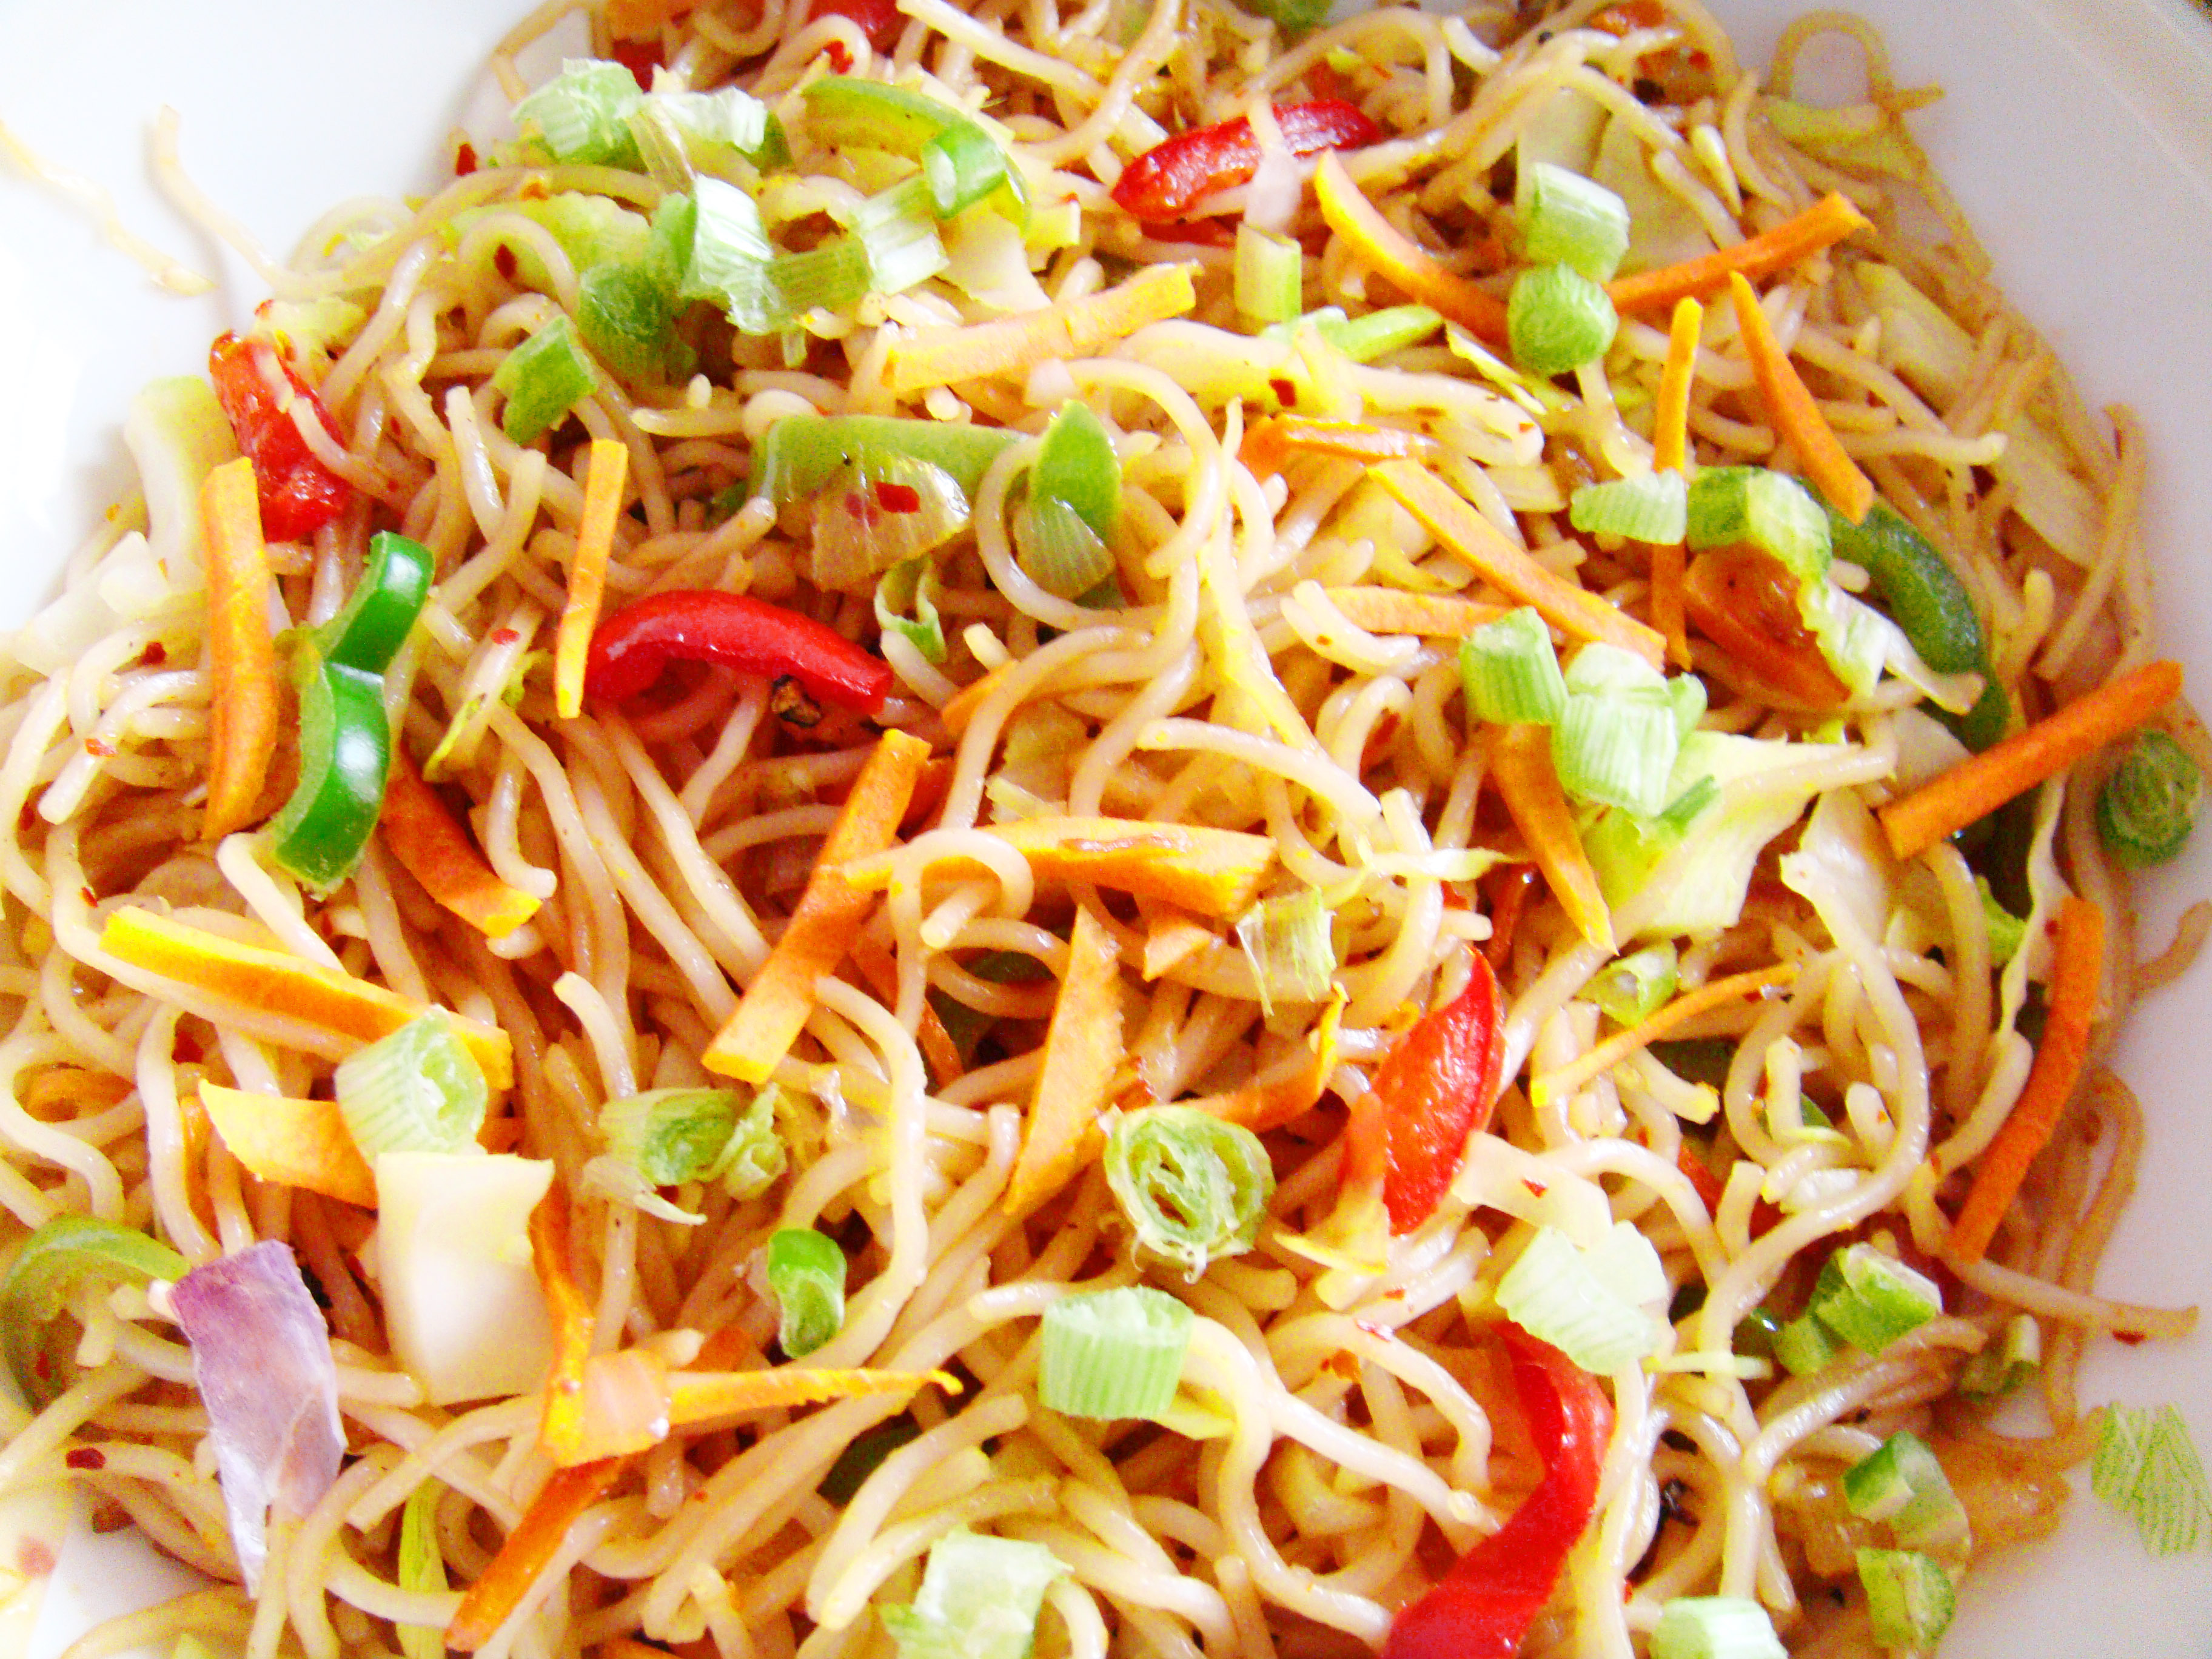 Hakka noodles recipe veg hakka noodles recipe vegetable noodles